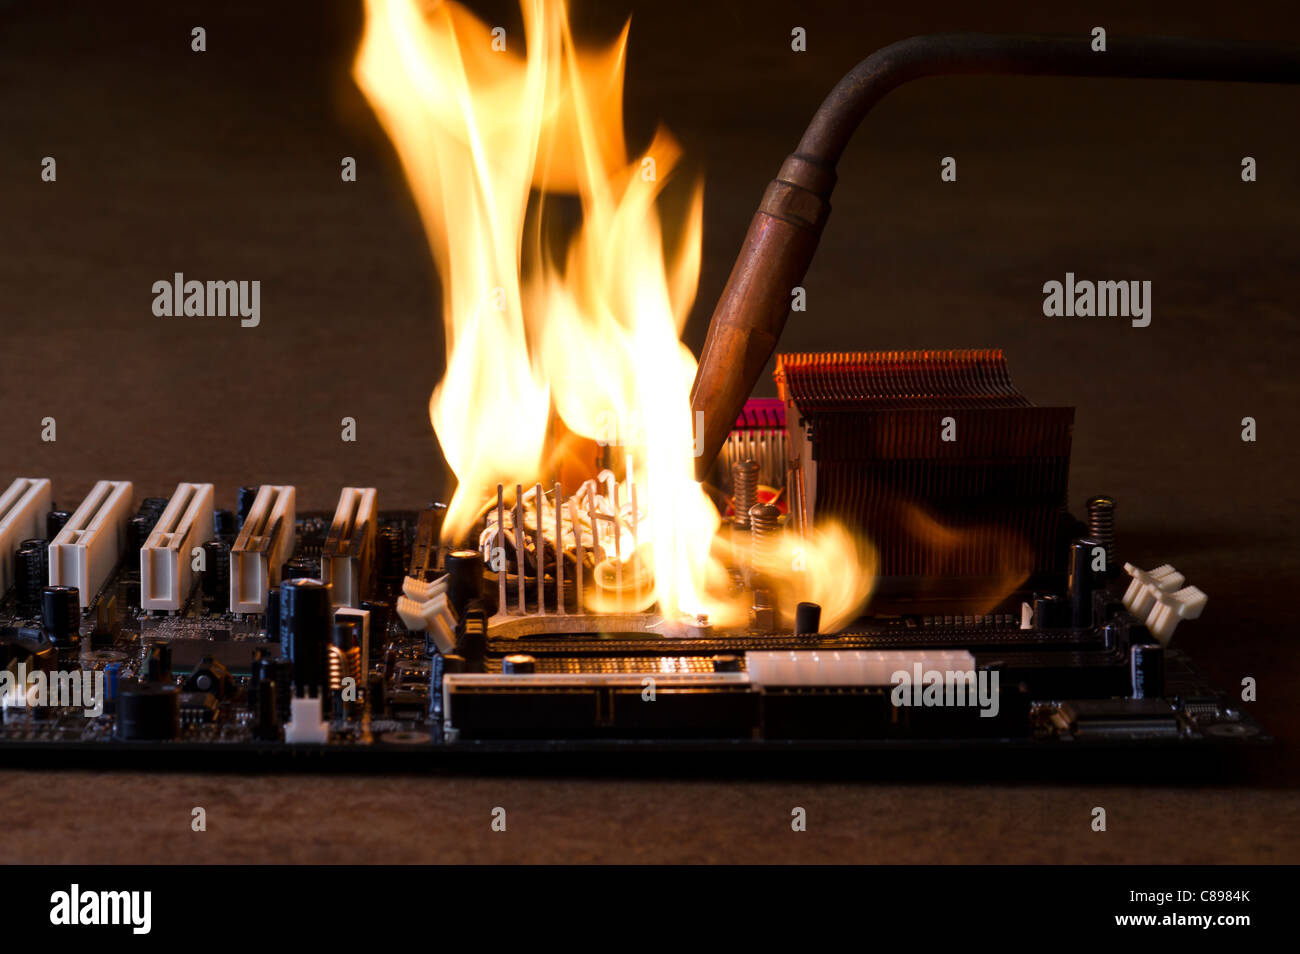 burning computer main board in rusty background. Copyspace Stock Photo